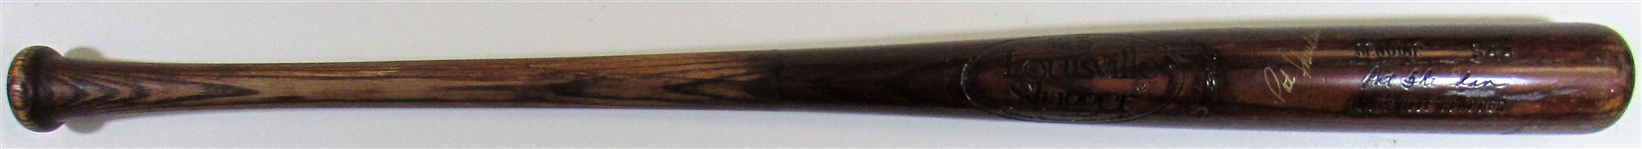 1980-83 Pat Sheridan Game Used & Signed Bat